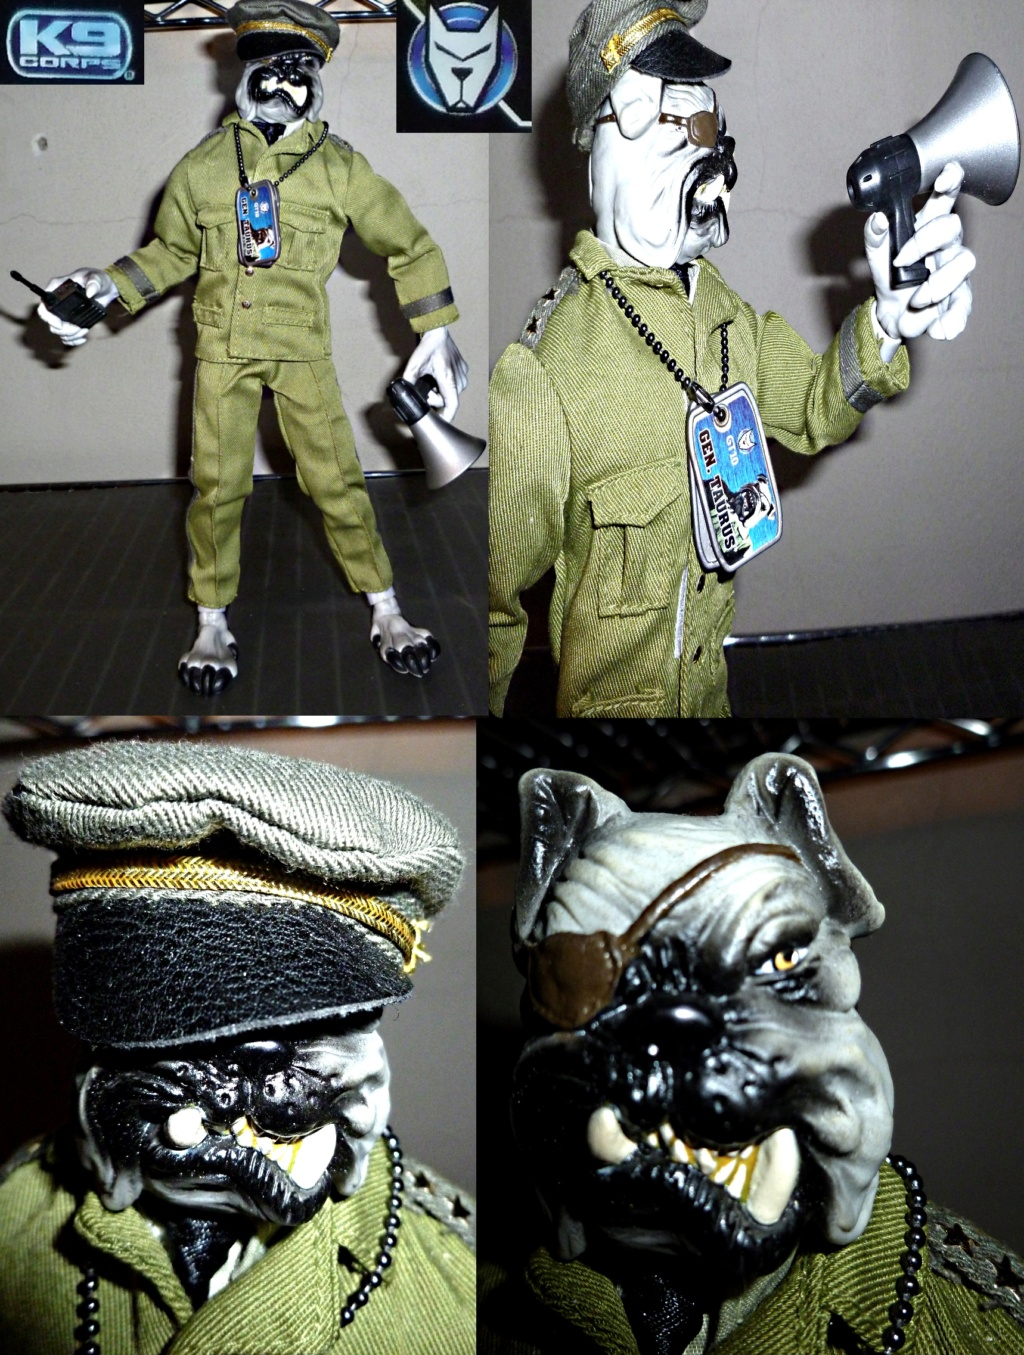 The K9 Corps: REBOOT Special! Genera10